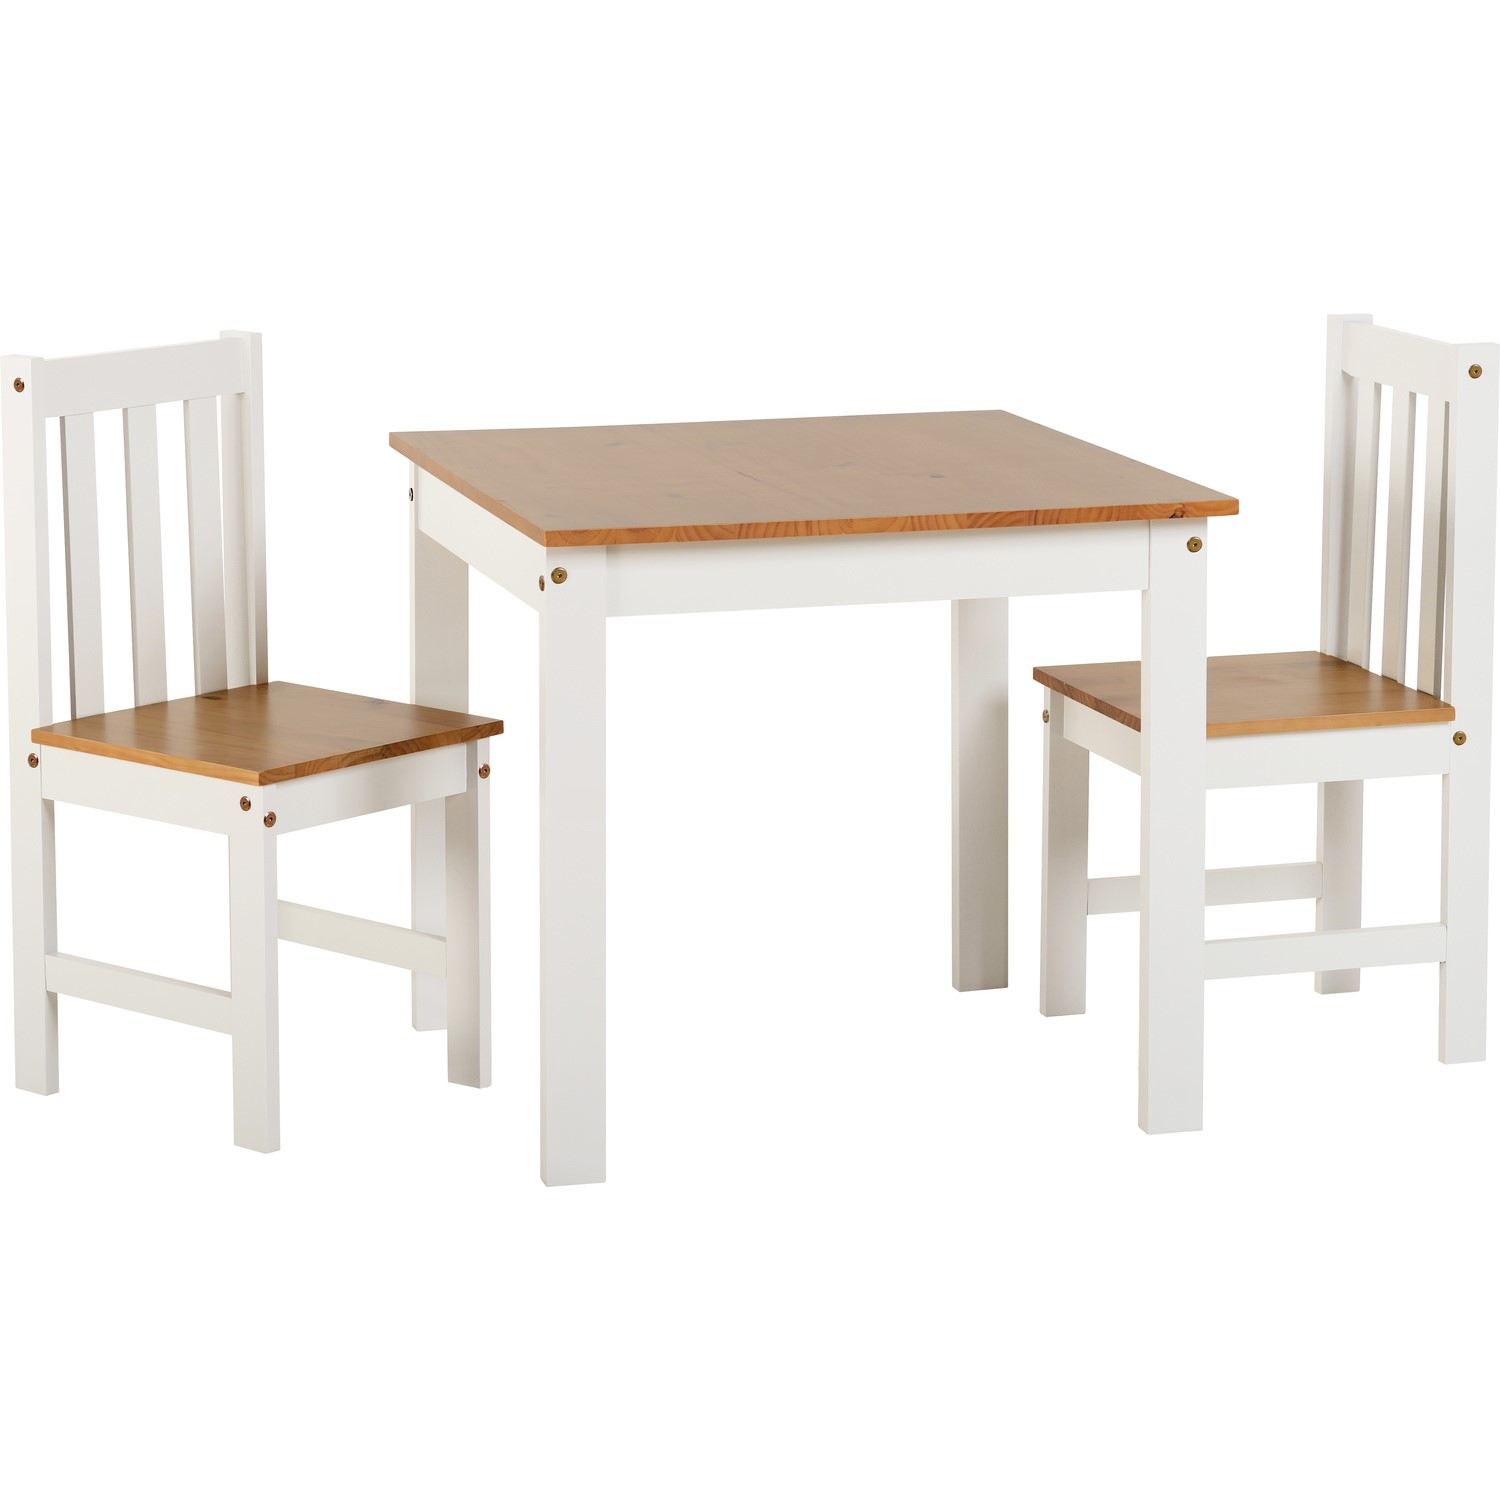 Etonnant Seconique Ludlow Dining Set In Oak U0026 White U0026 2 Matching Dining Chairs  400 401 163